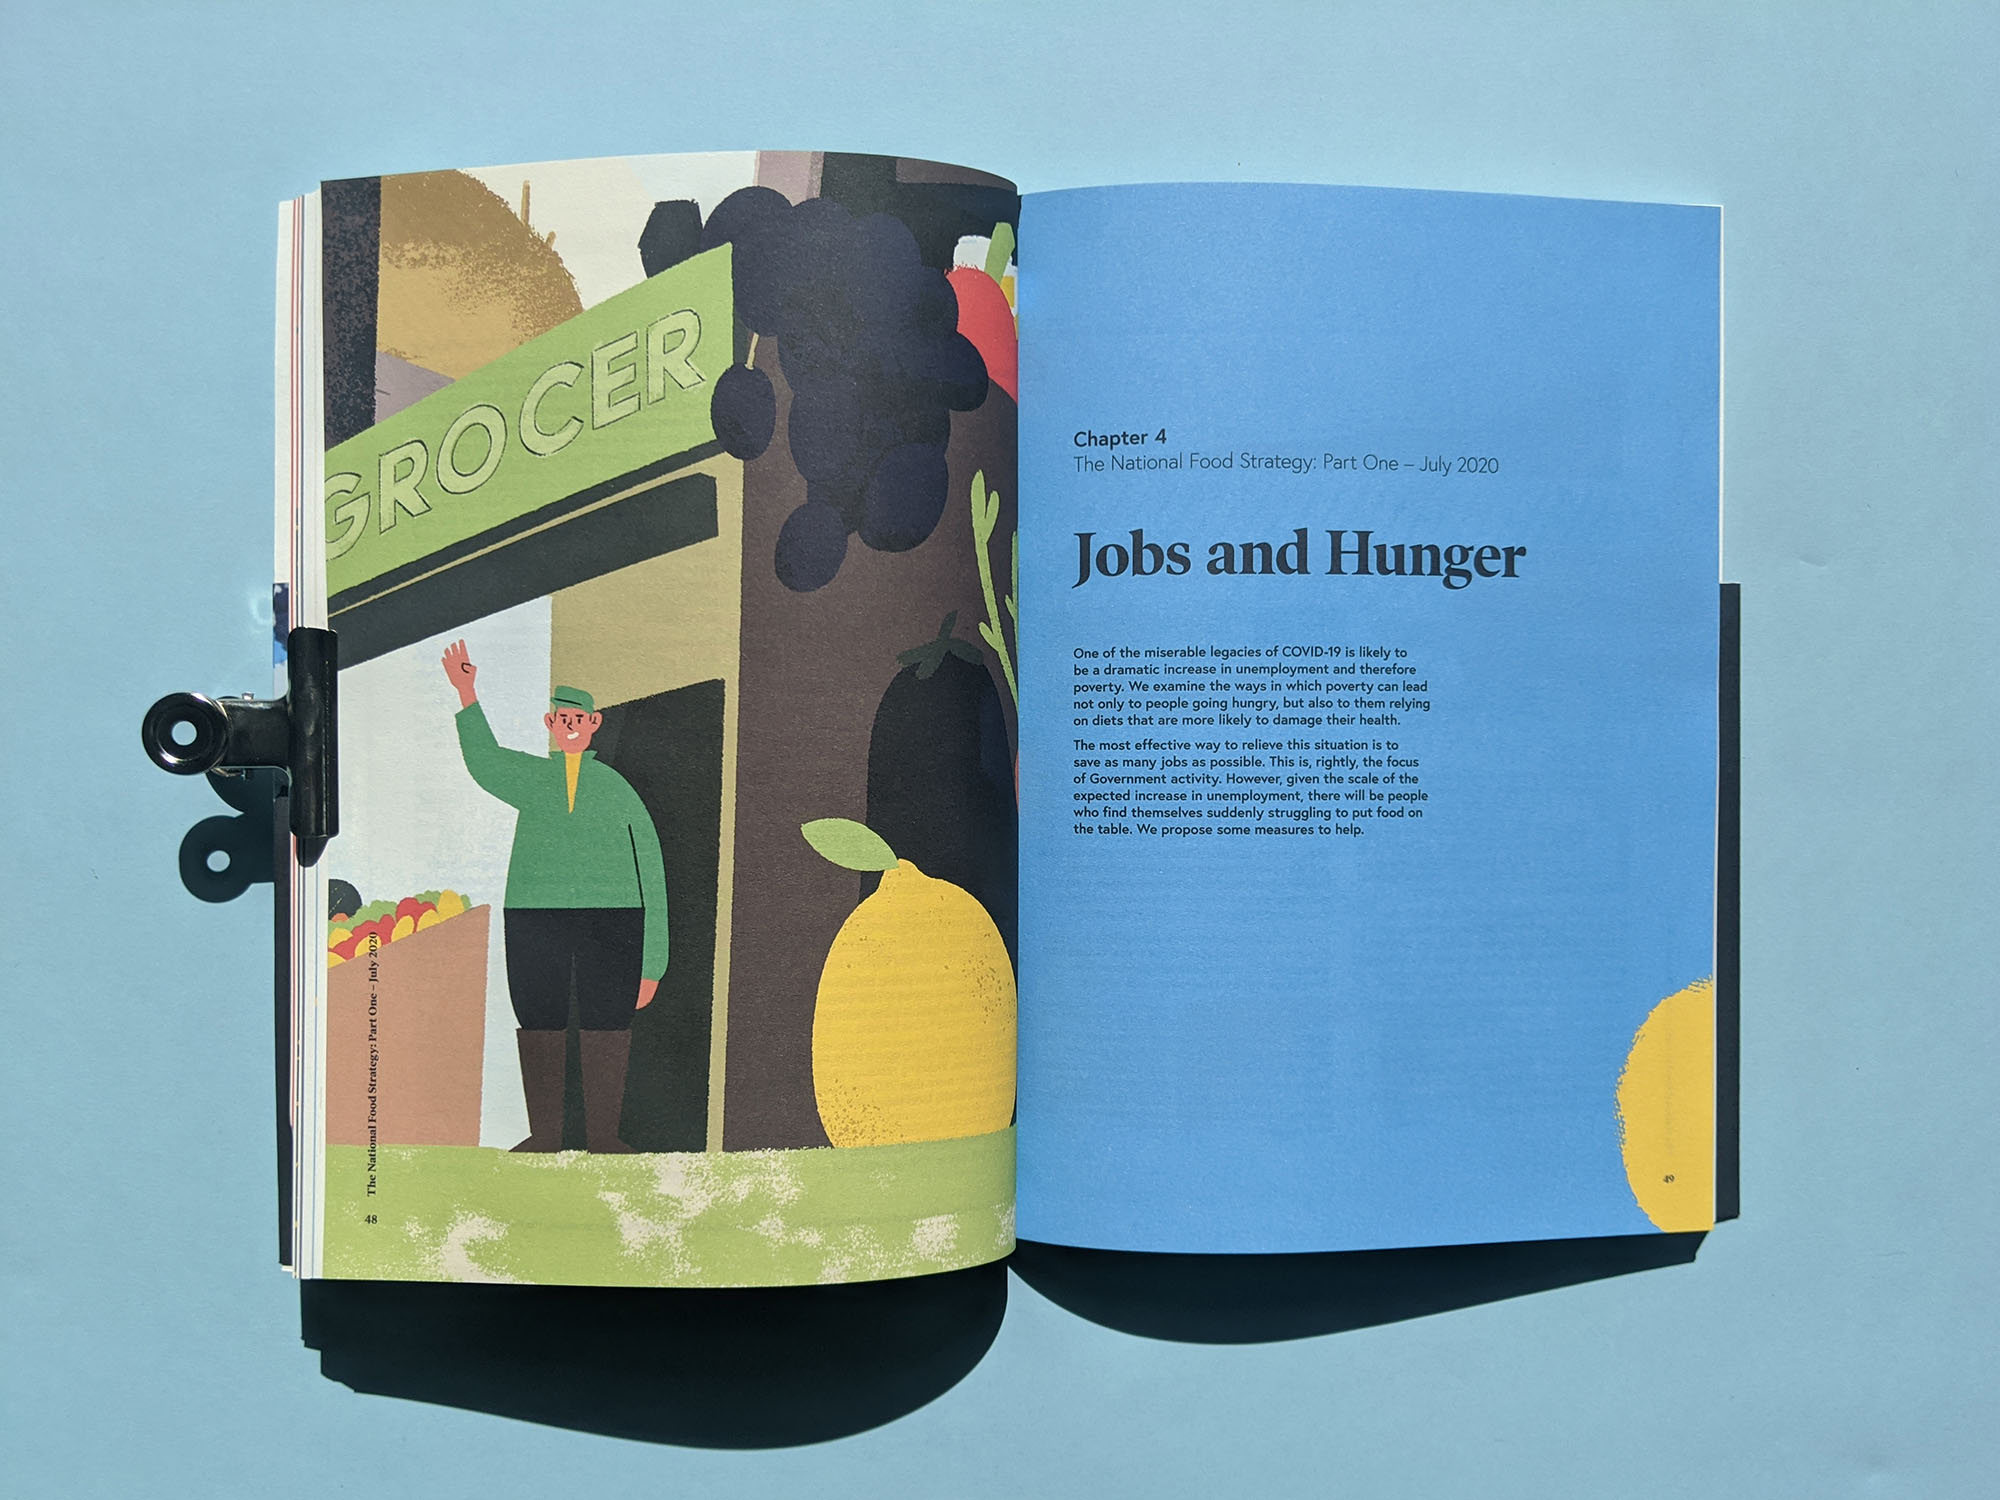 National Food Strategy Report illustrations